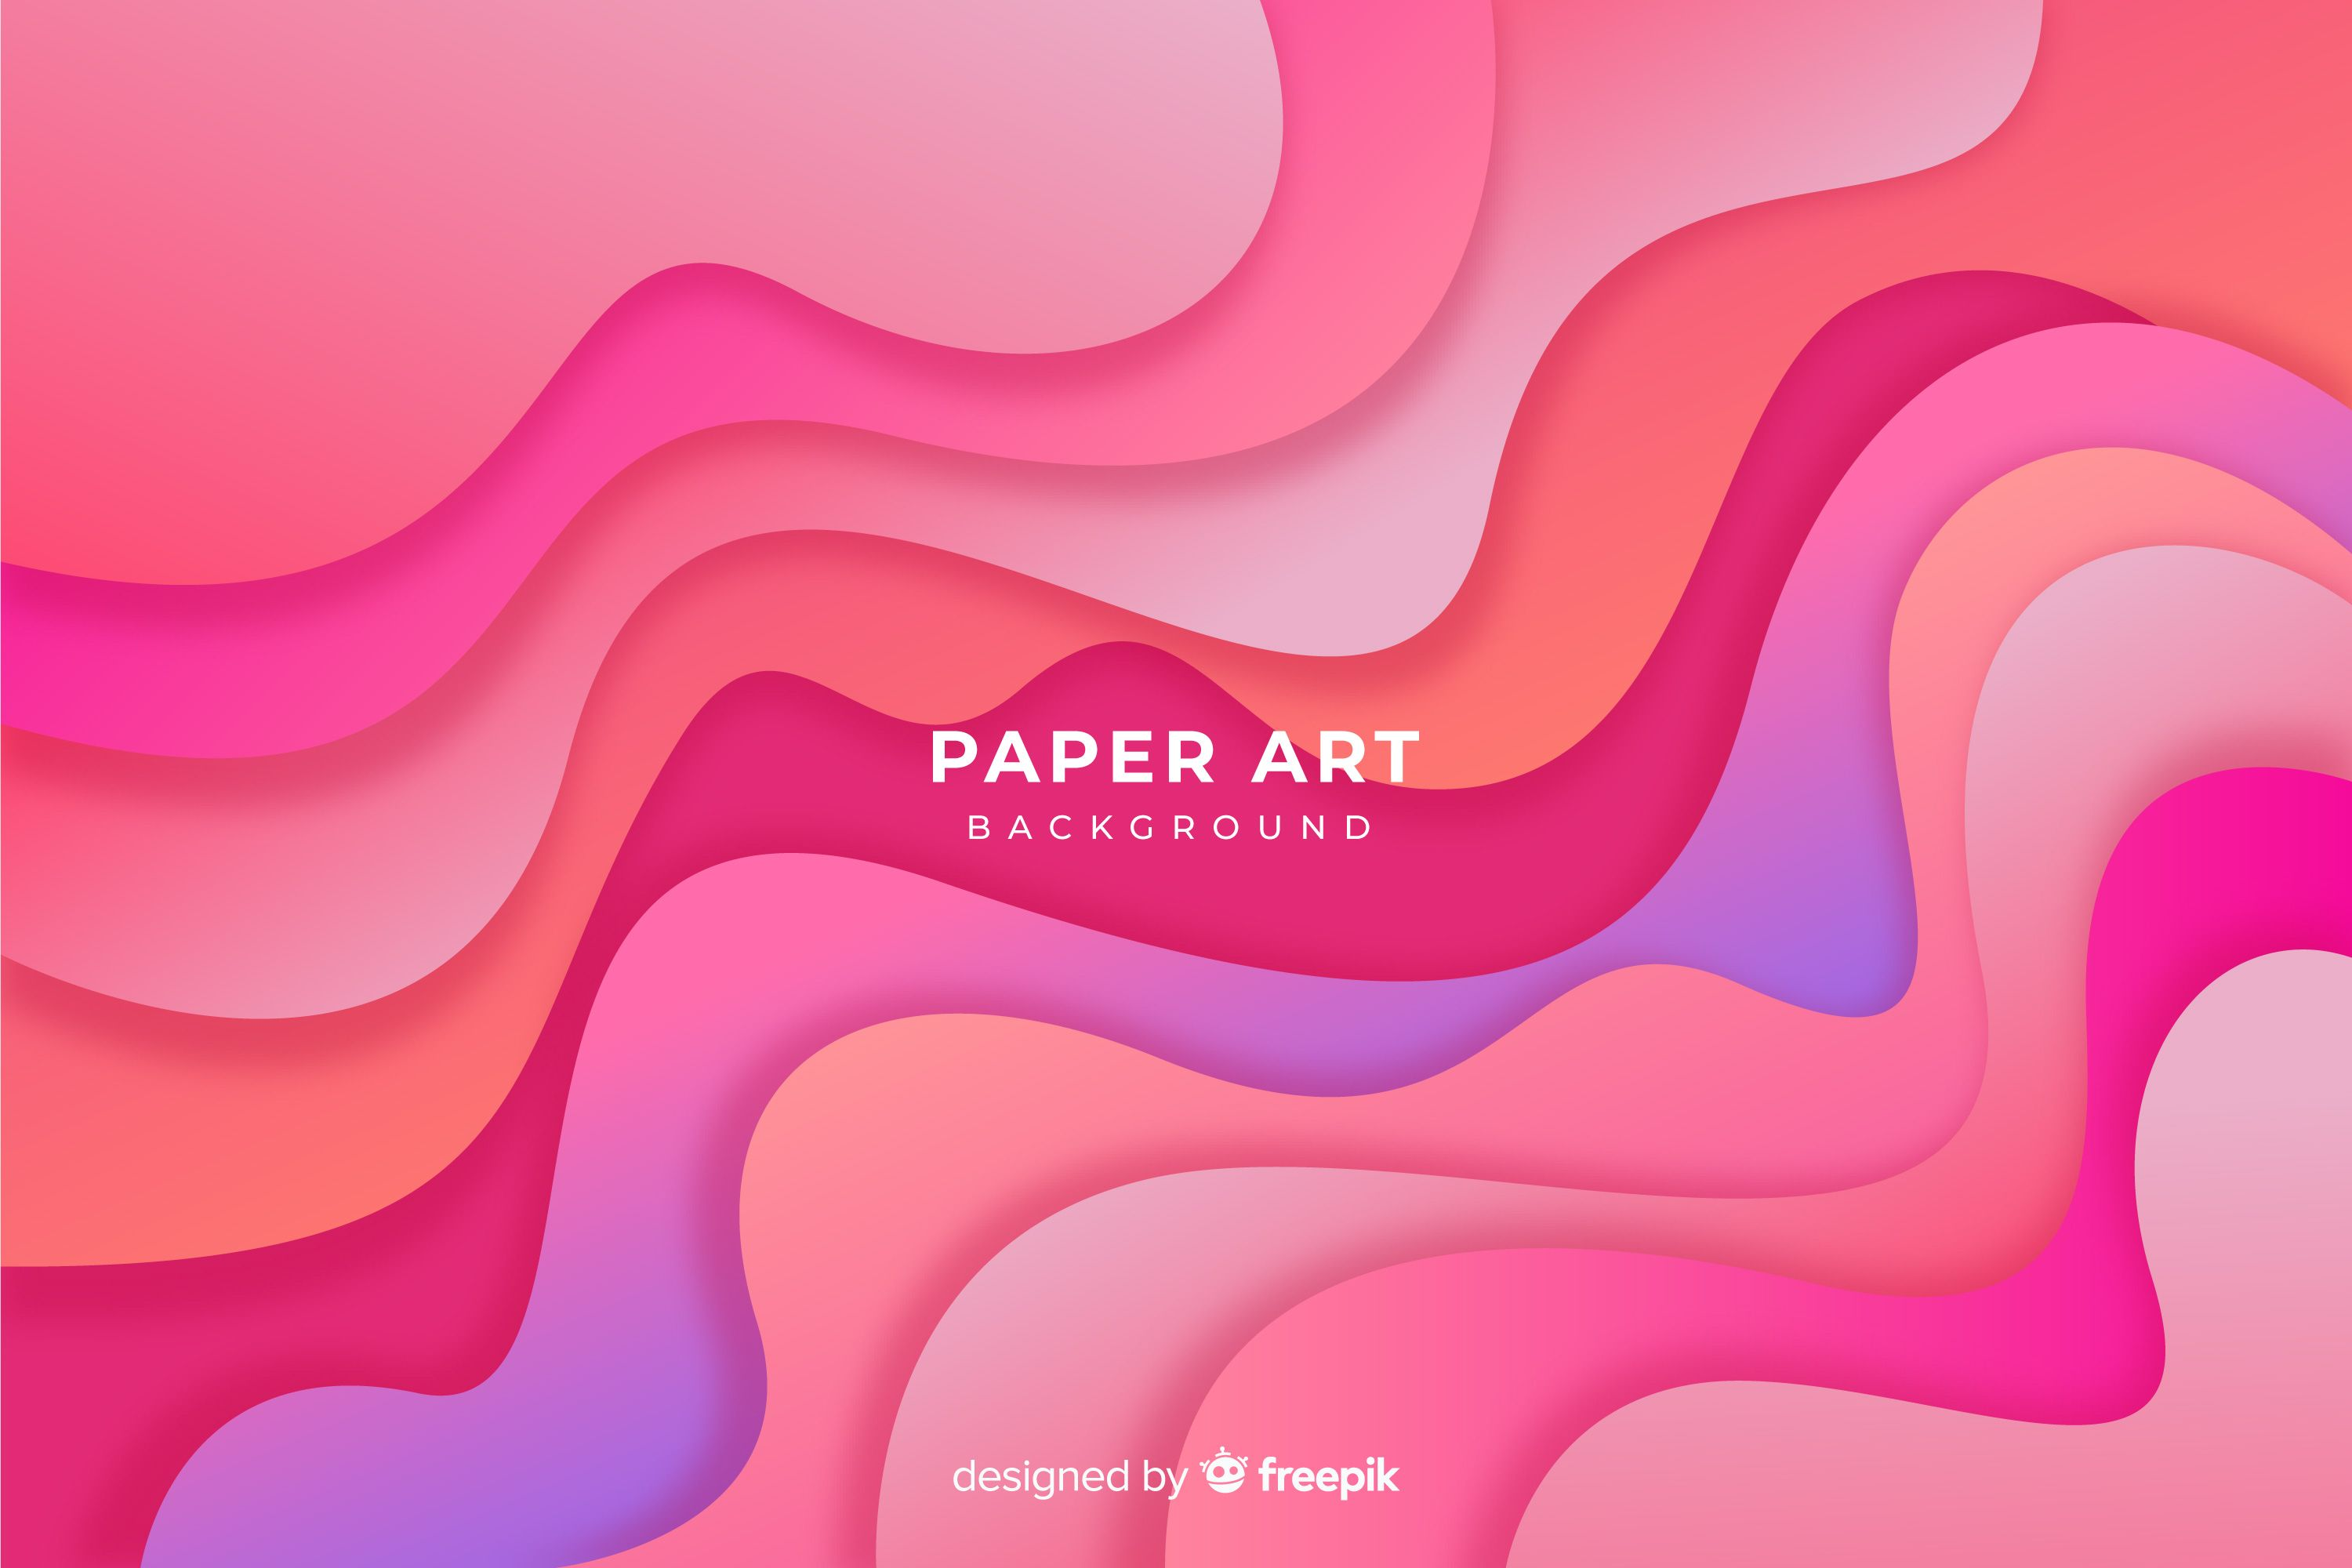 Download Paper Art Background For Free Church Graphic Design